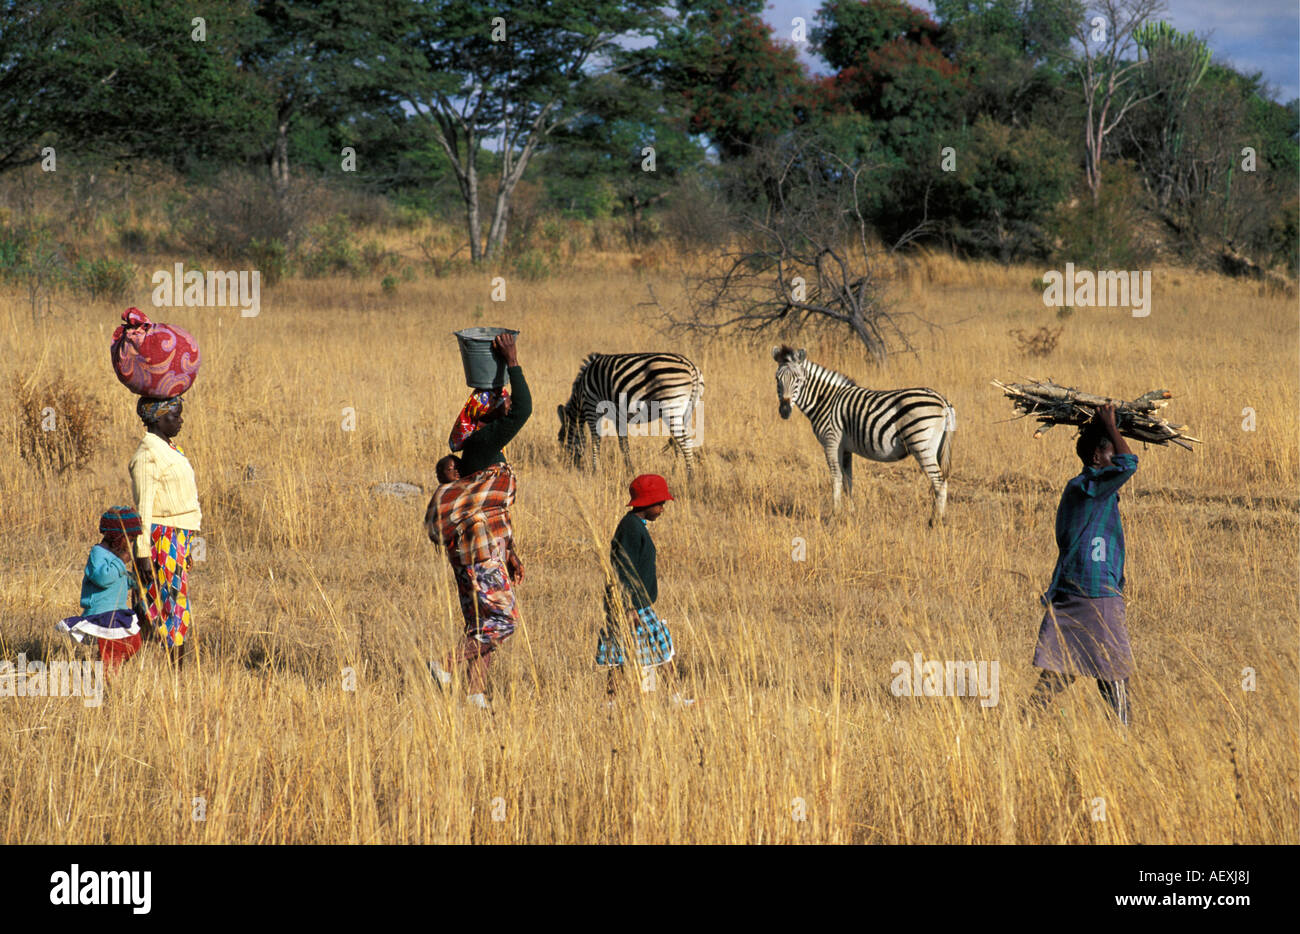 Zimbabwe Harare People walking through dry grass with zebras in background - Stock Image